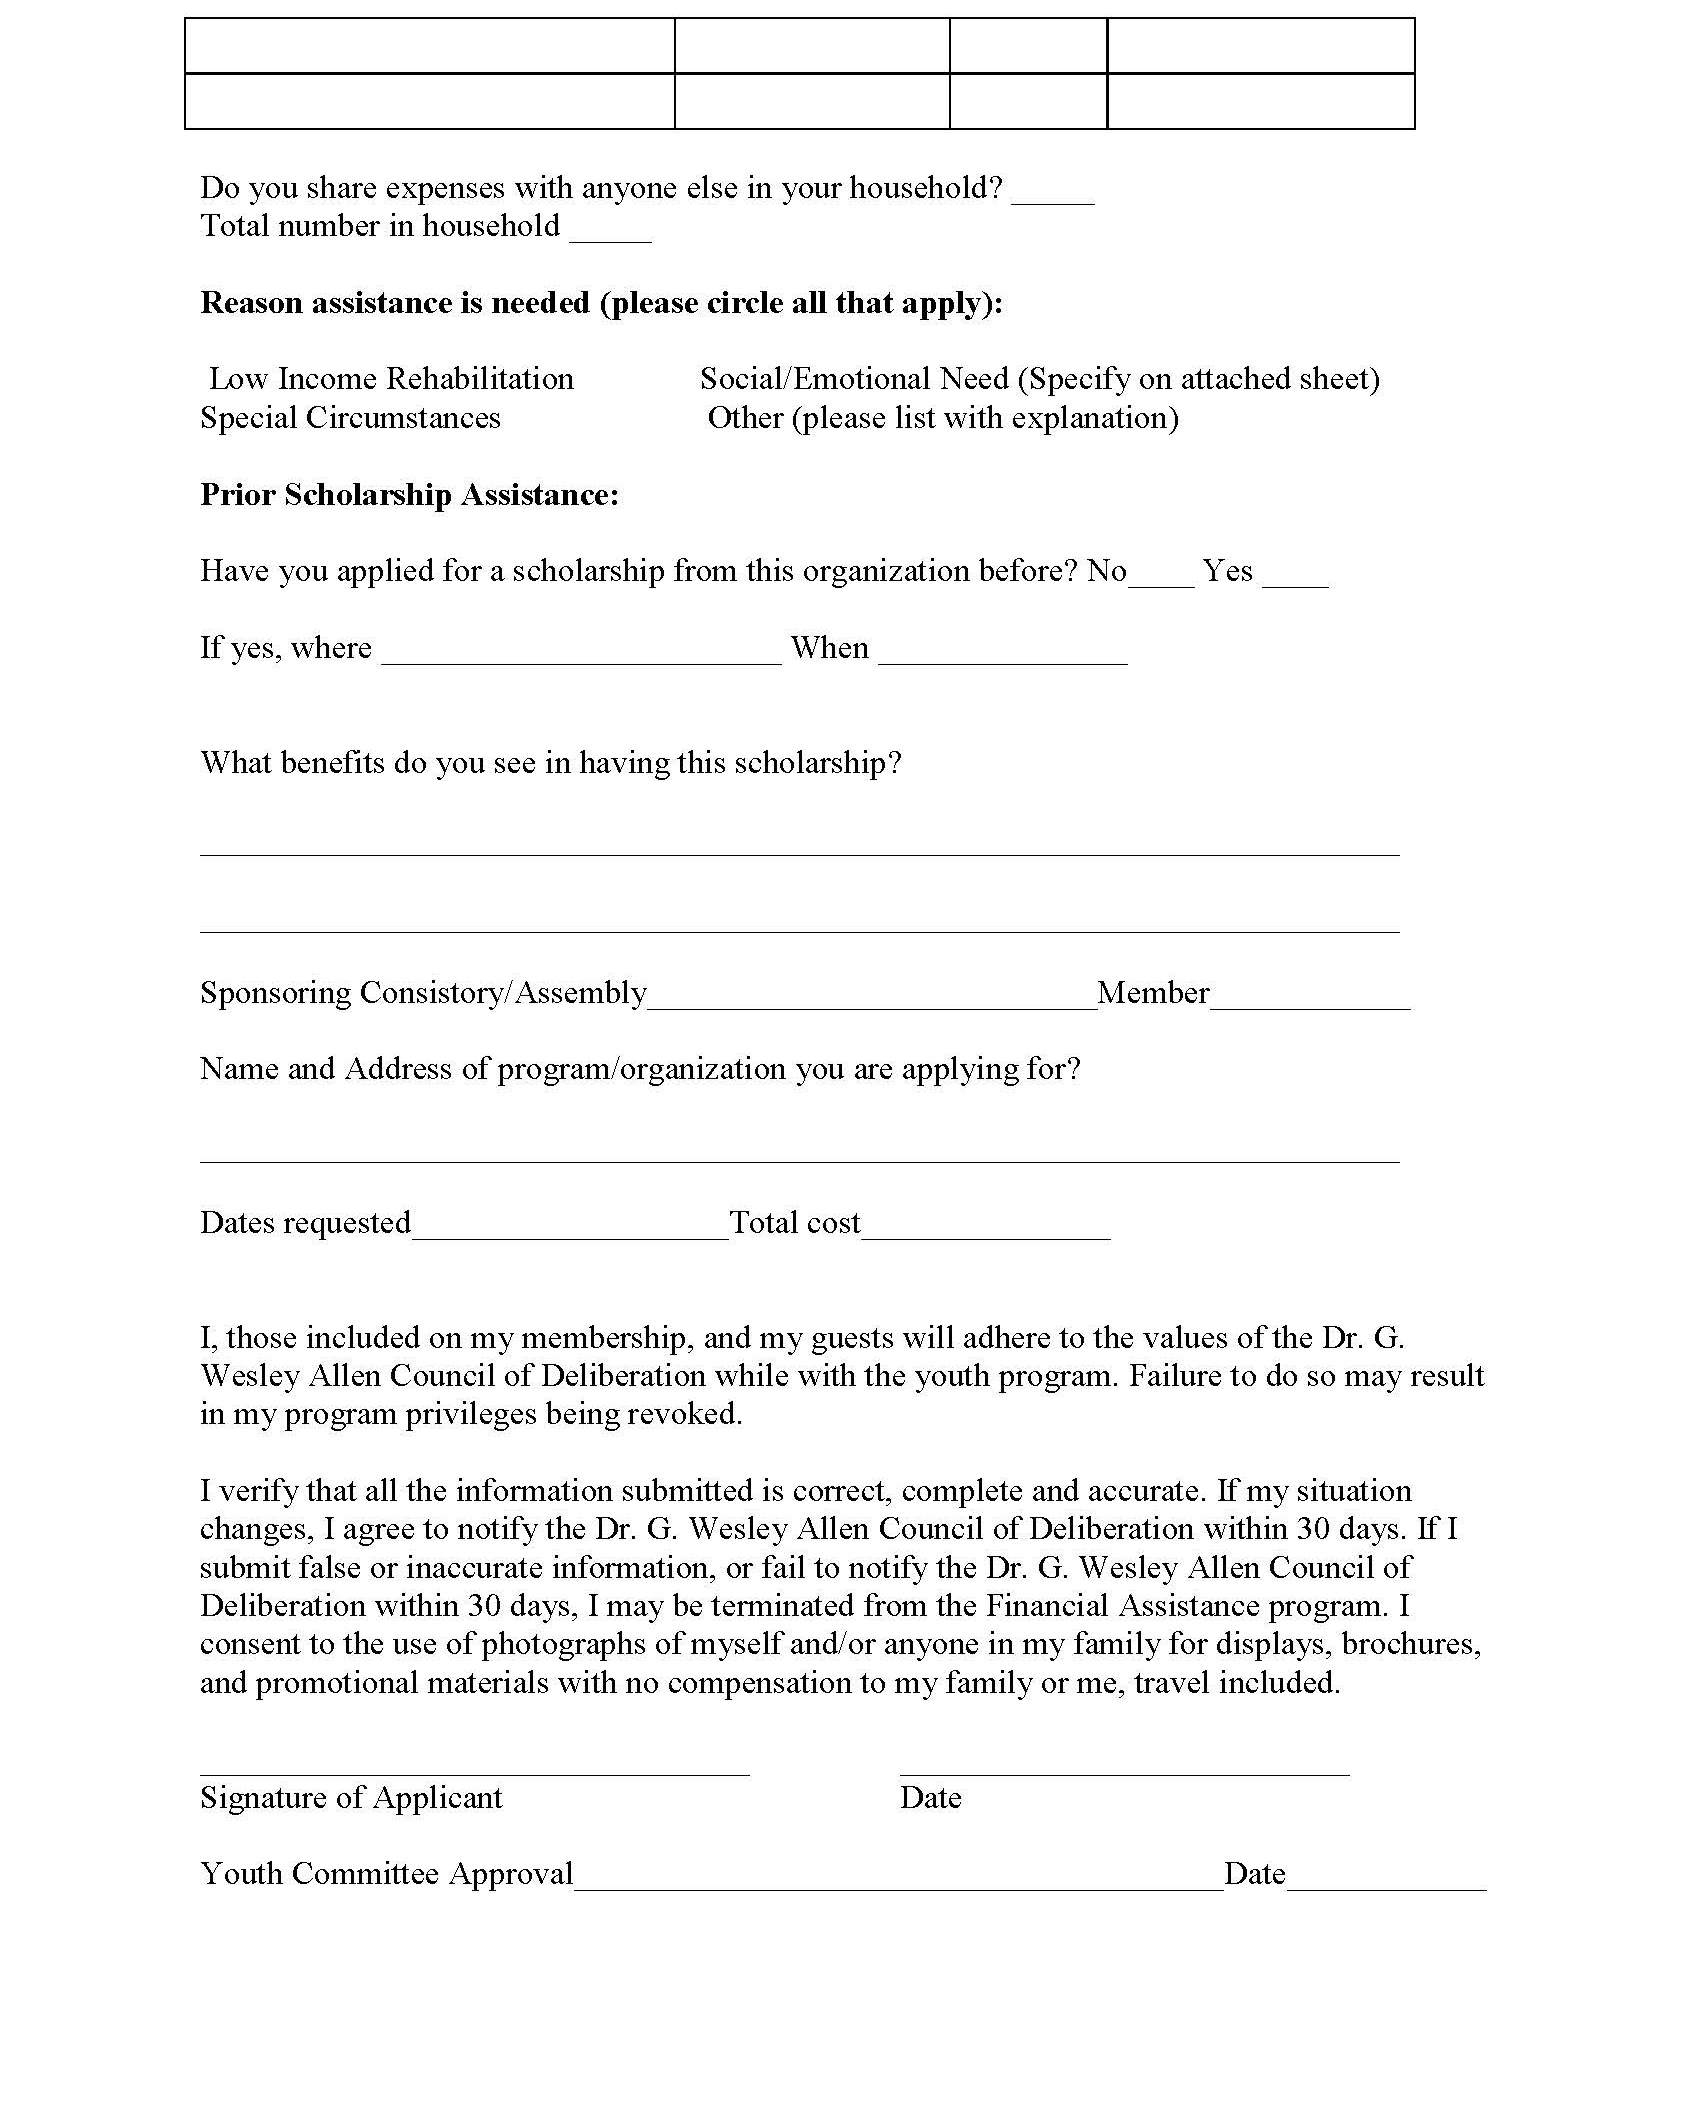 Youth Program Scholarship Application_